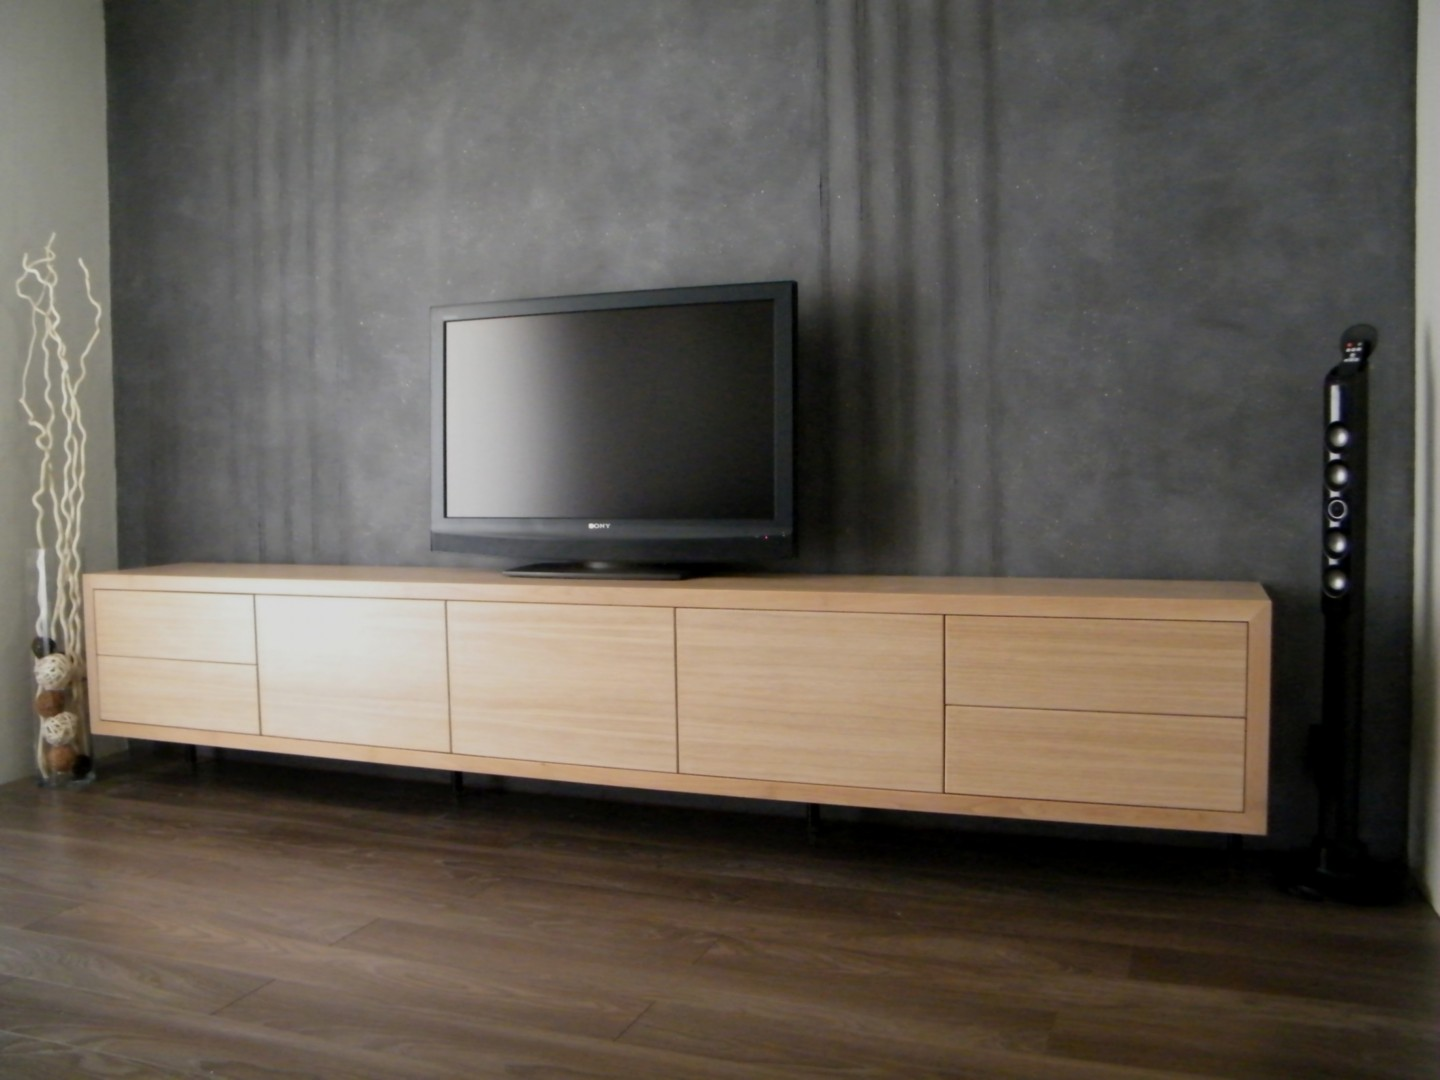 meuble tv bois chene id es de d coration int rieure french decor. Black Bedroom Furniture Sets. Home Design Ideas